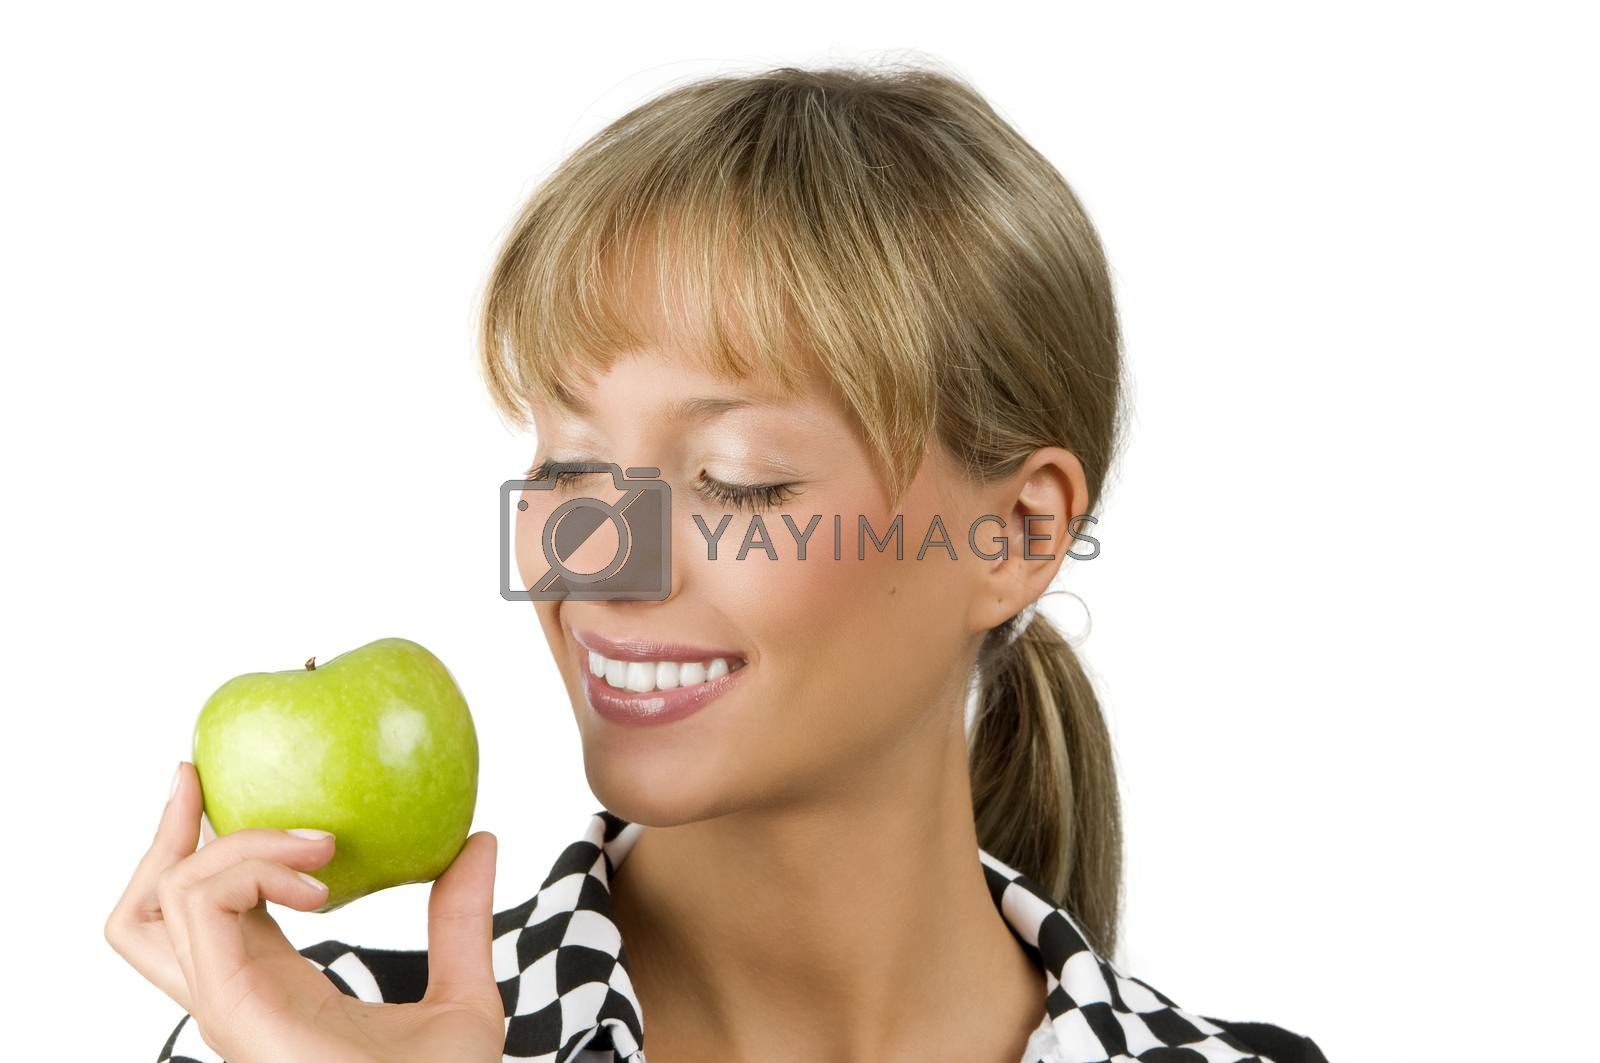 Royalty free image of smiling at green apple by fotoCD